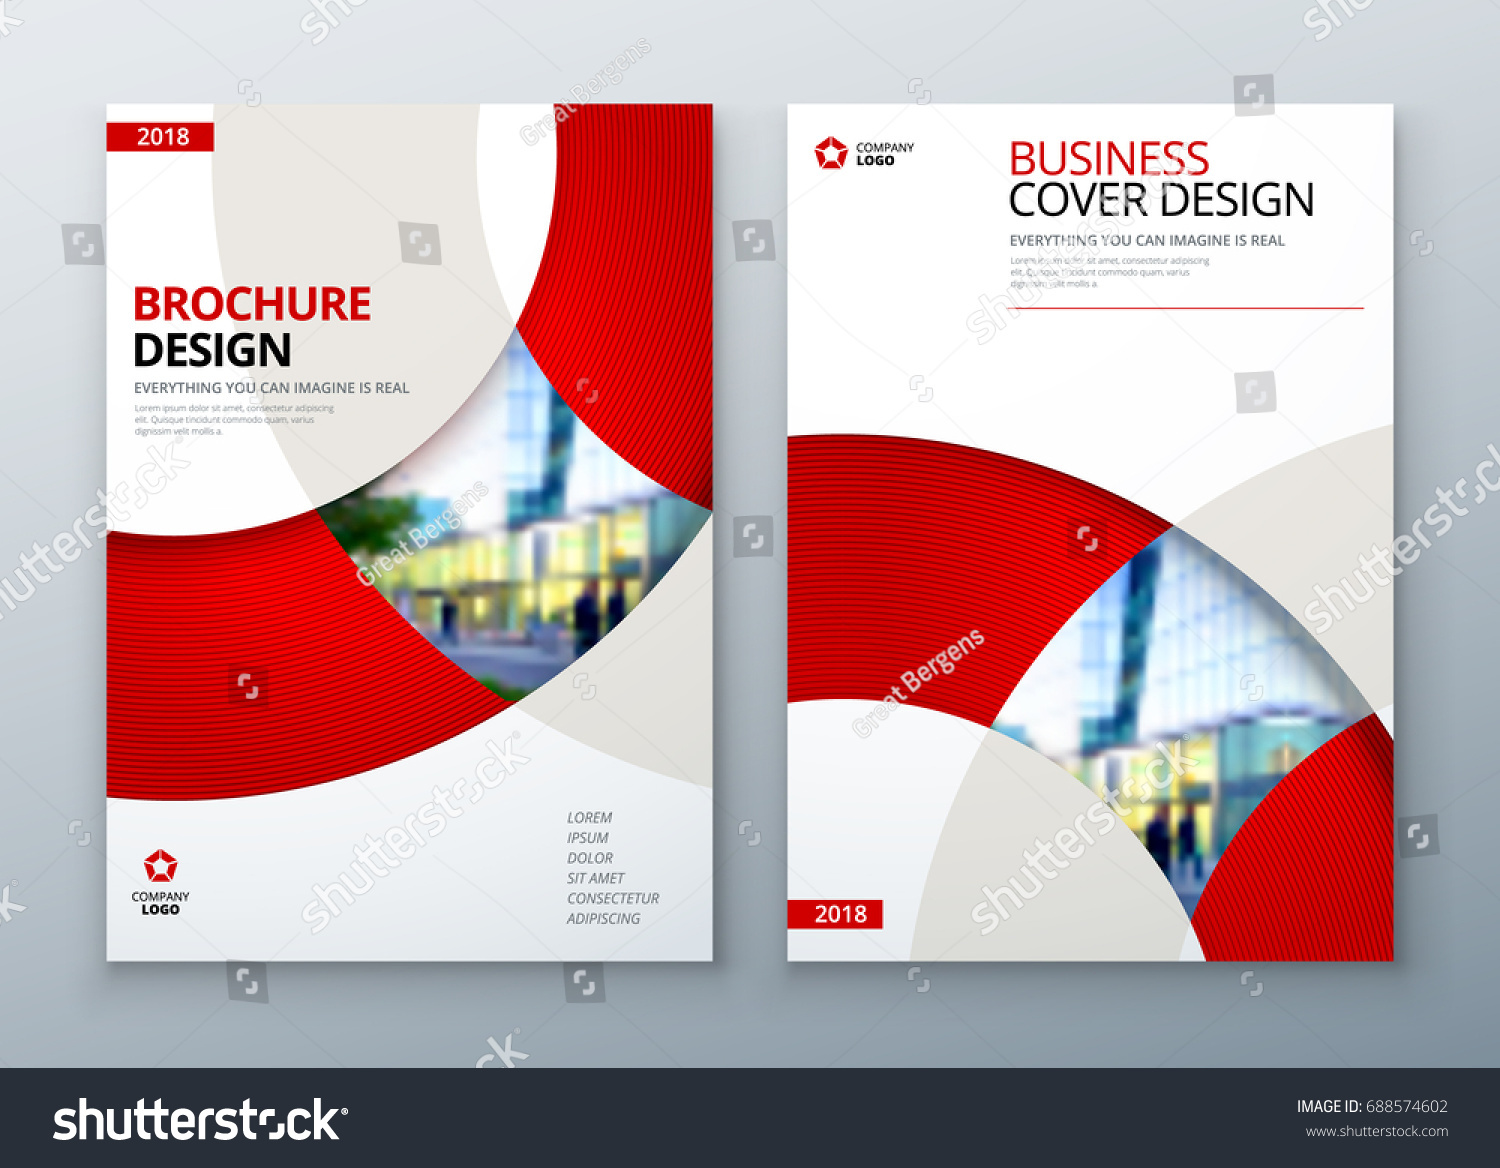 Brochure Template Layout Design Corporate Business Stock Vector     Brochure template layout design  Corporate business annual report  catalog   magazine  flyer mockup